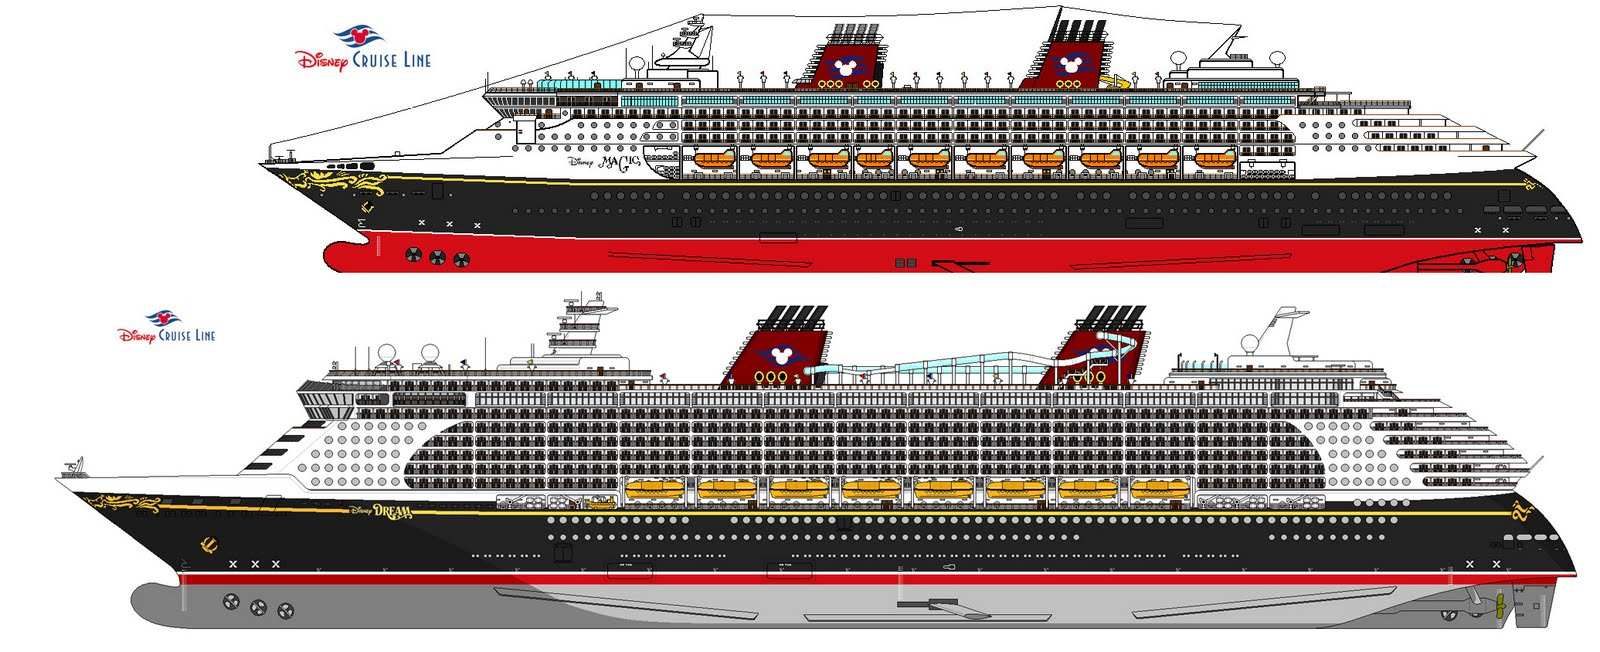 Mouse Guide Identifying Disney Cruise Ships